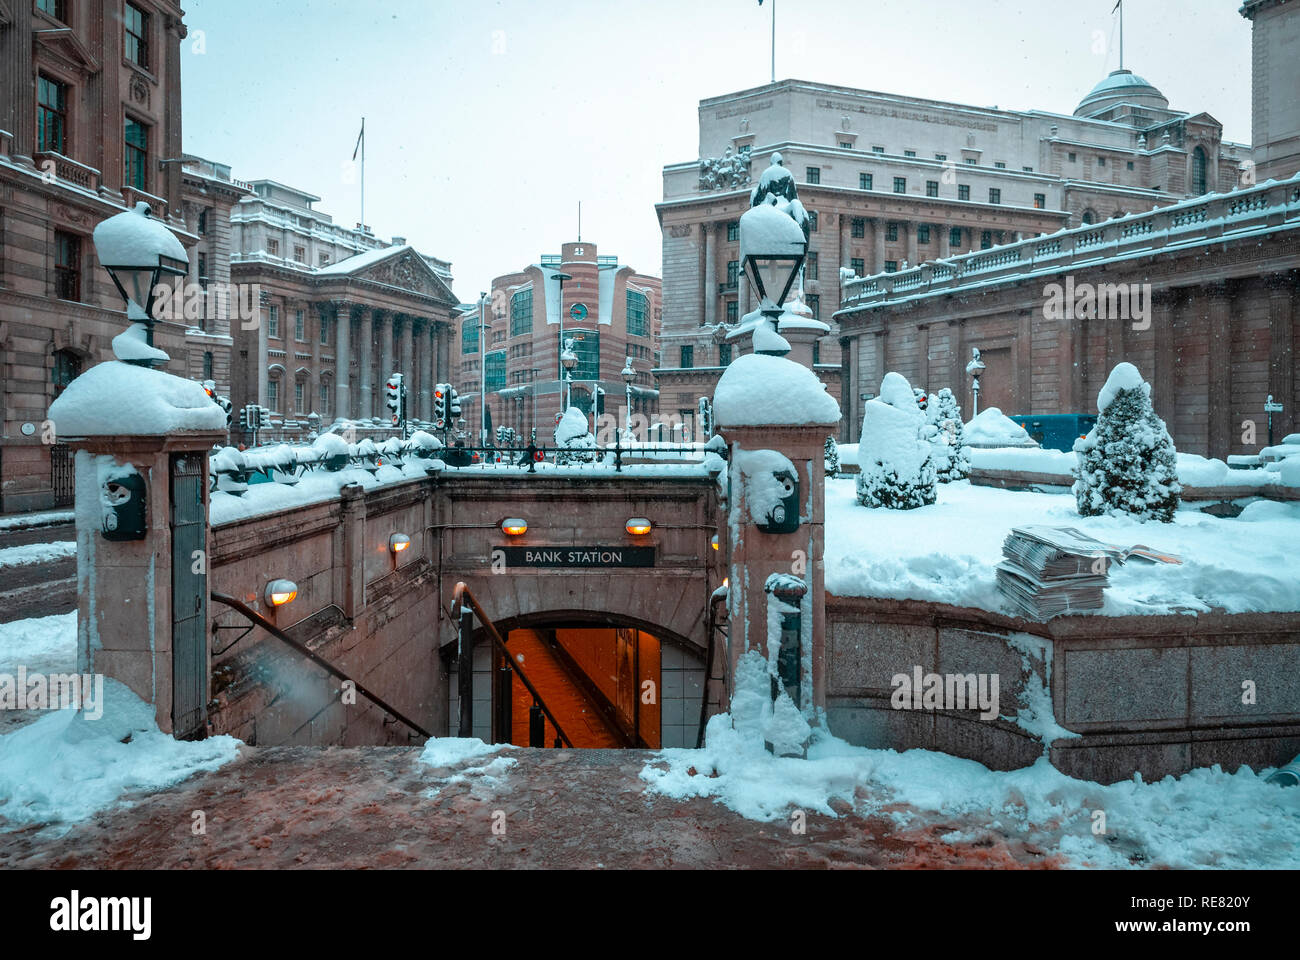 Snow covered entrance to Bank Underground station - Stock Image